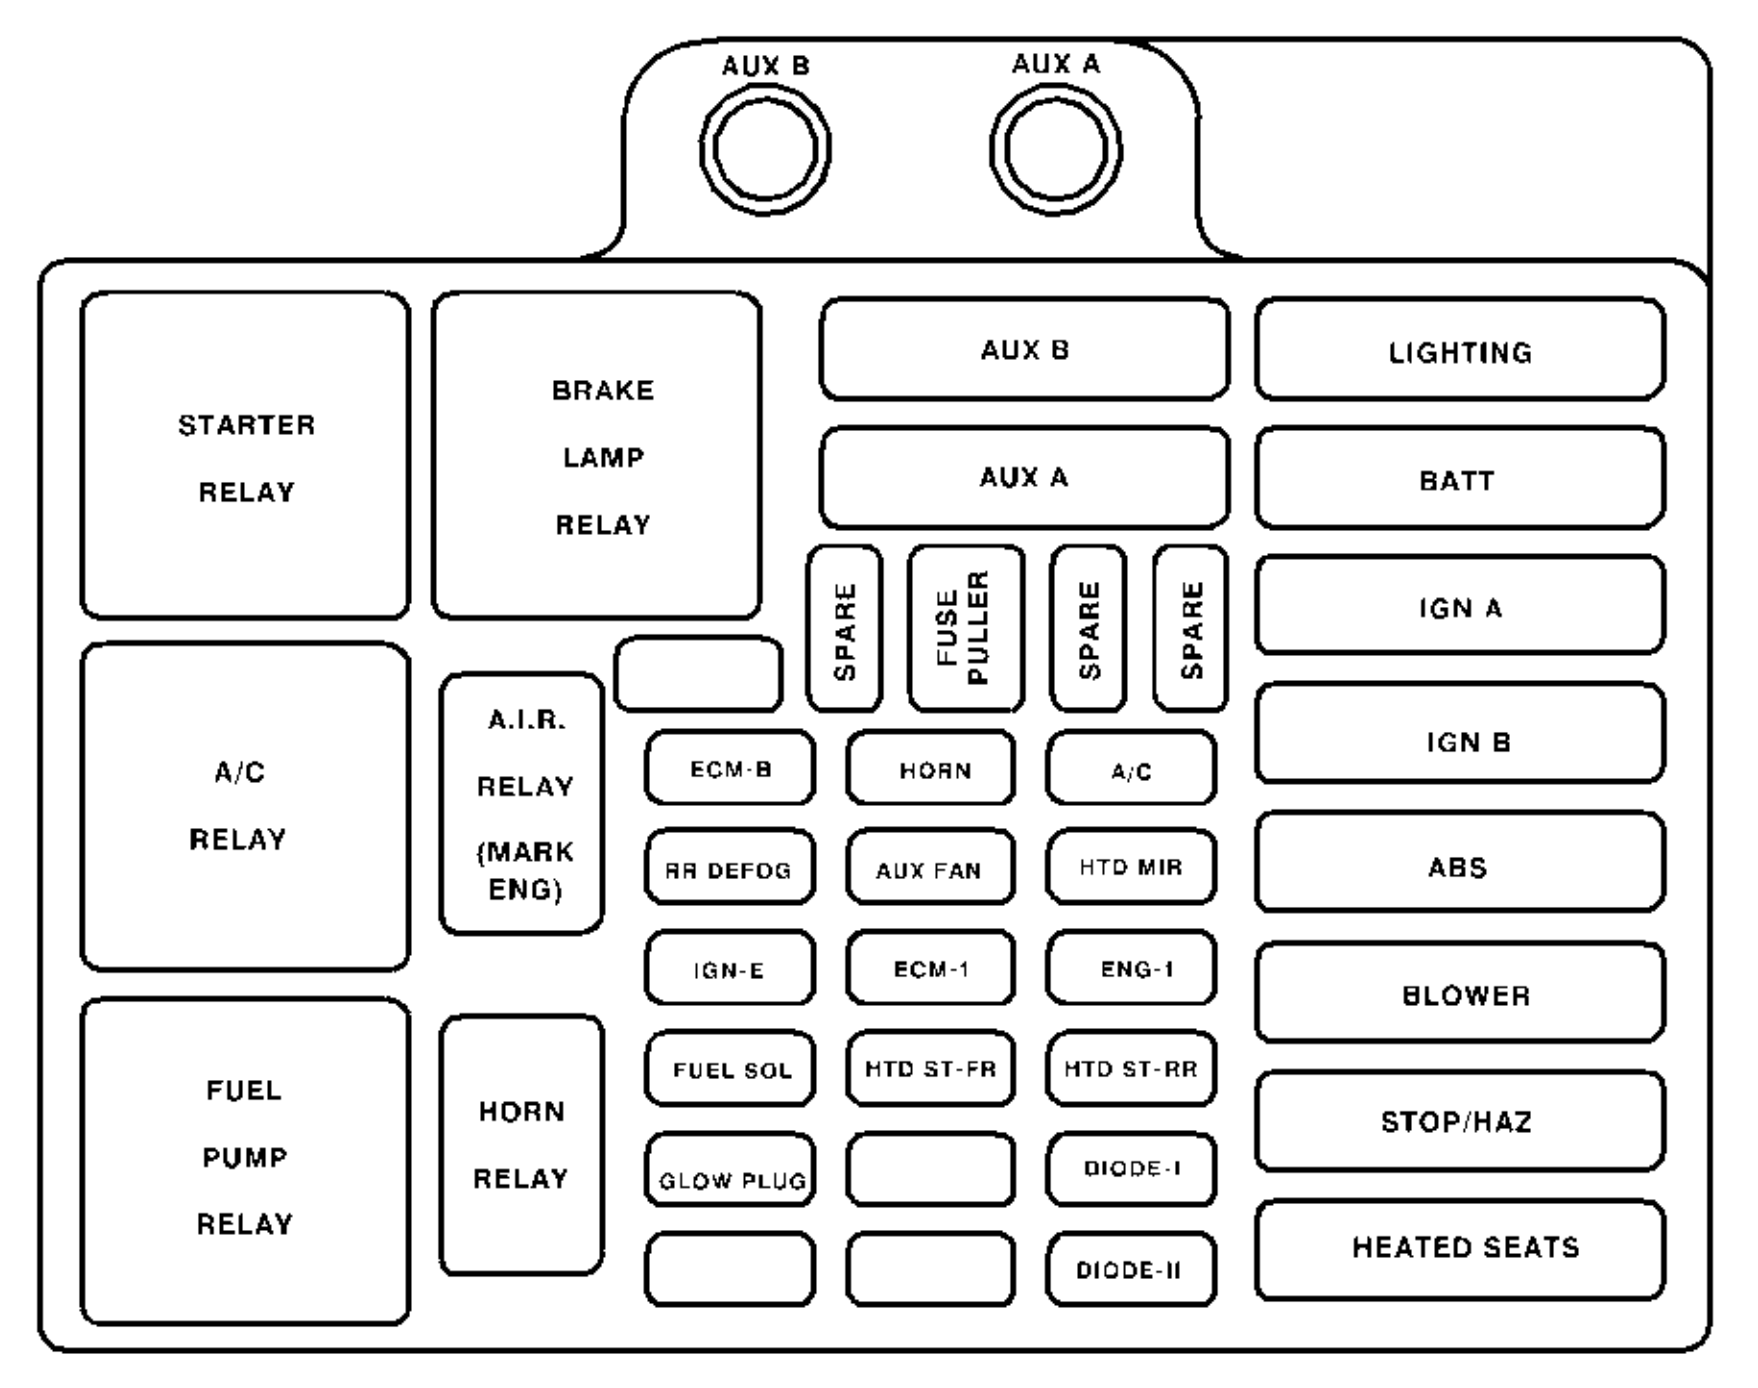 hight resolution of 1996 chevy s10 fuse box diagram wiring diagram used 2002